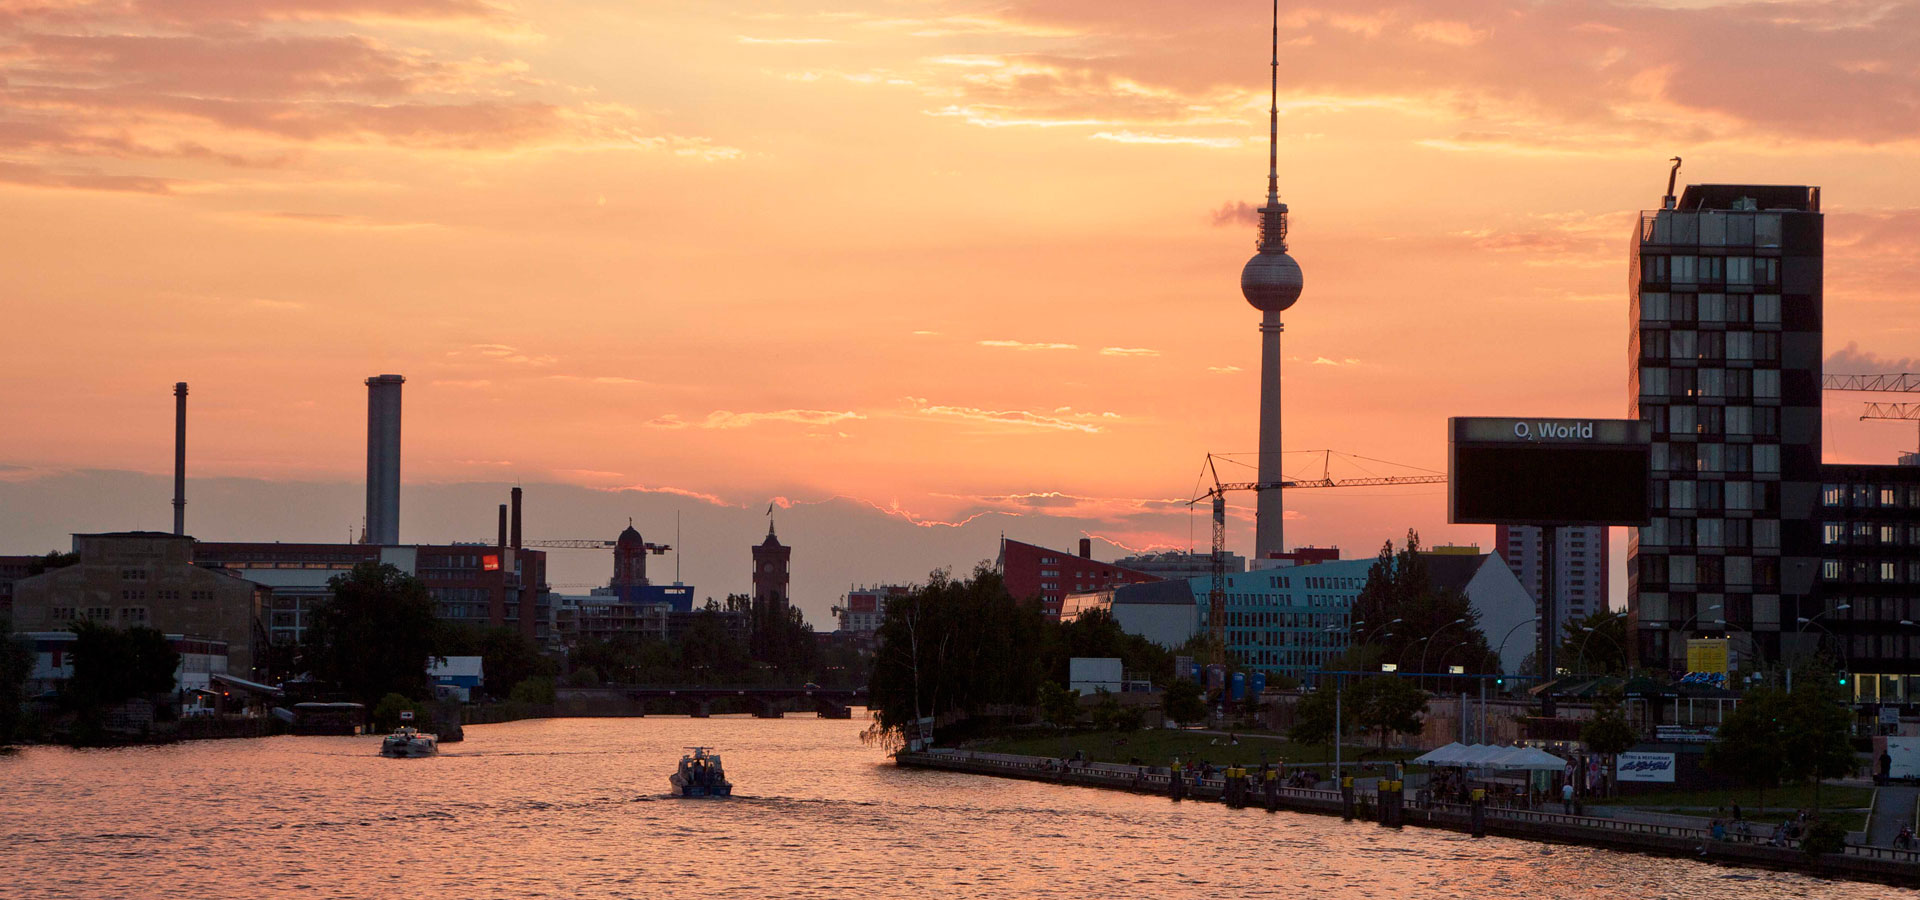 The Top 11 Best Photo Spots in Berlin